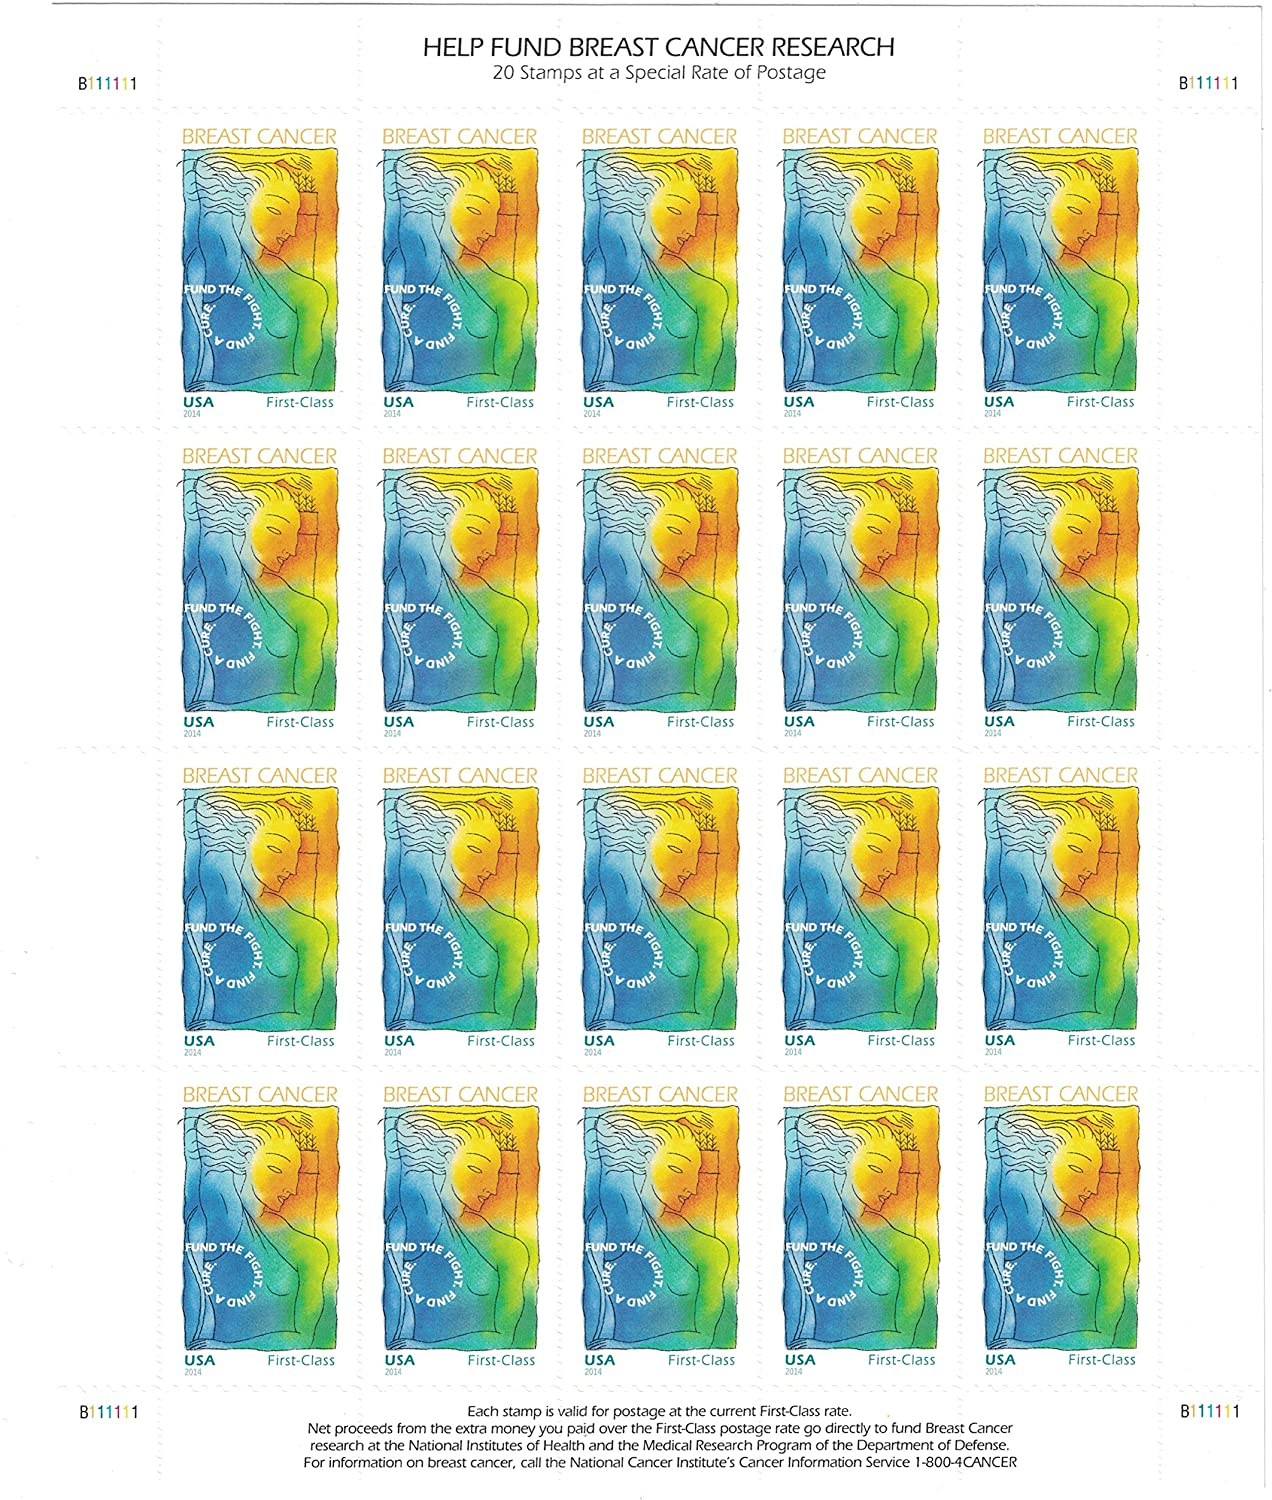 Sheet of 20 Semipostal Stamps USPS Breast Cancer Research Forever Stamps